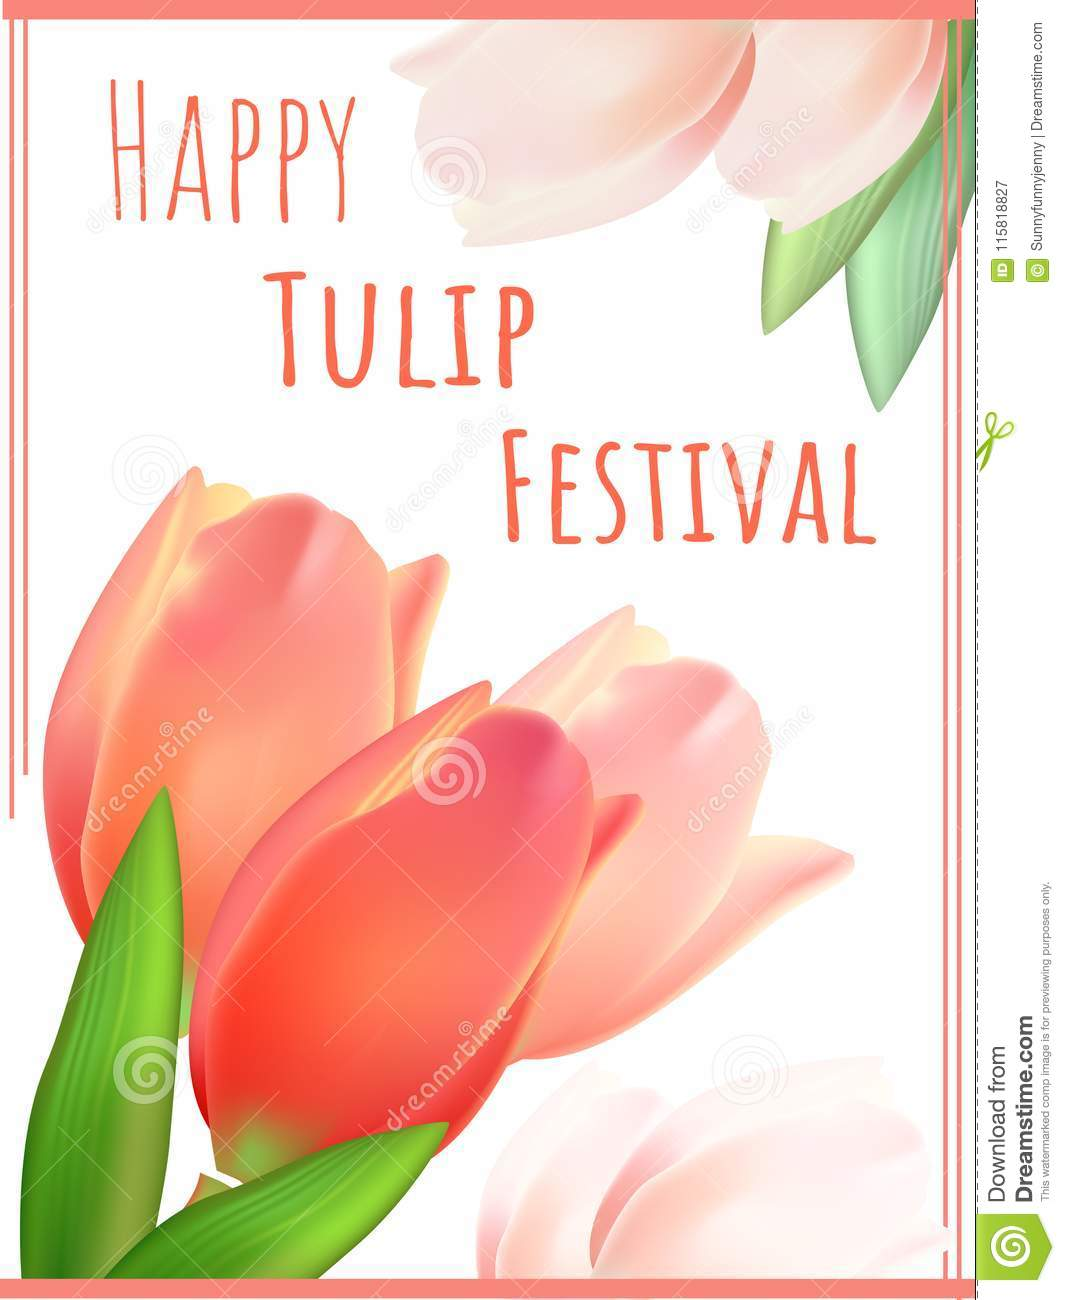 Greeting card canadian tulip festival stock vector illustration of download greeting card canadian tulip festival stock vector illustration of canadian card 115818827 m4hsunfo